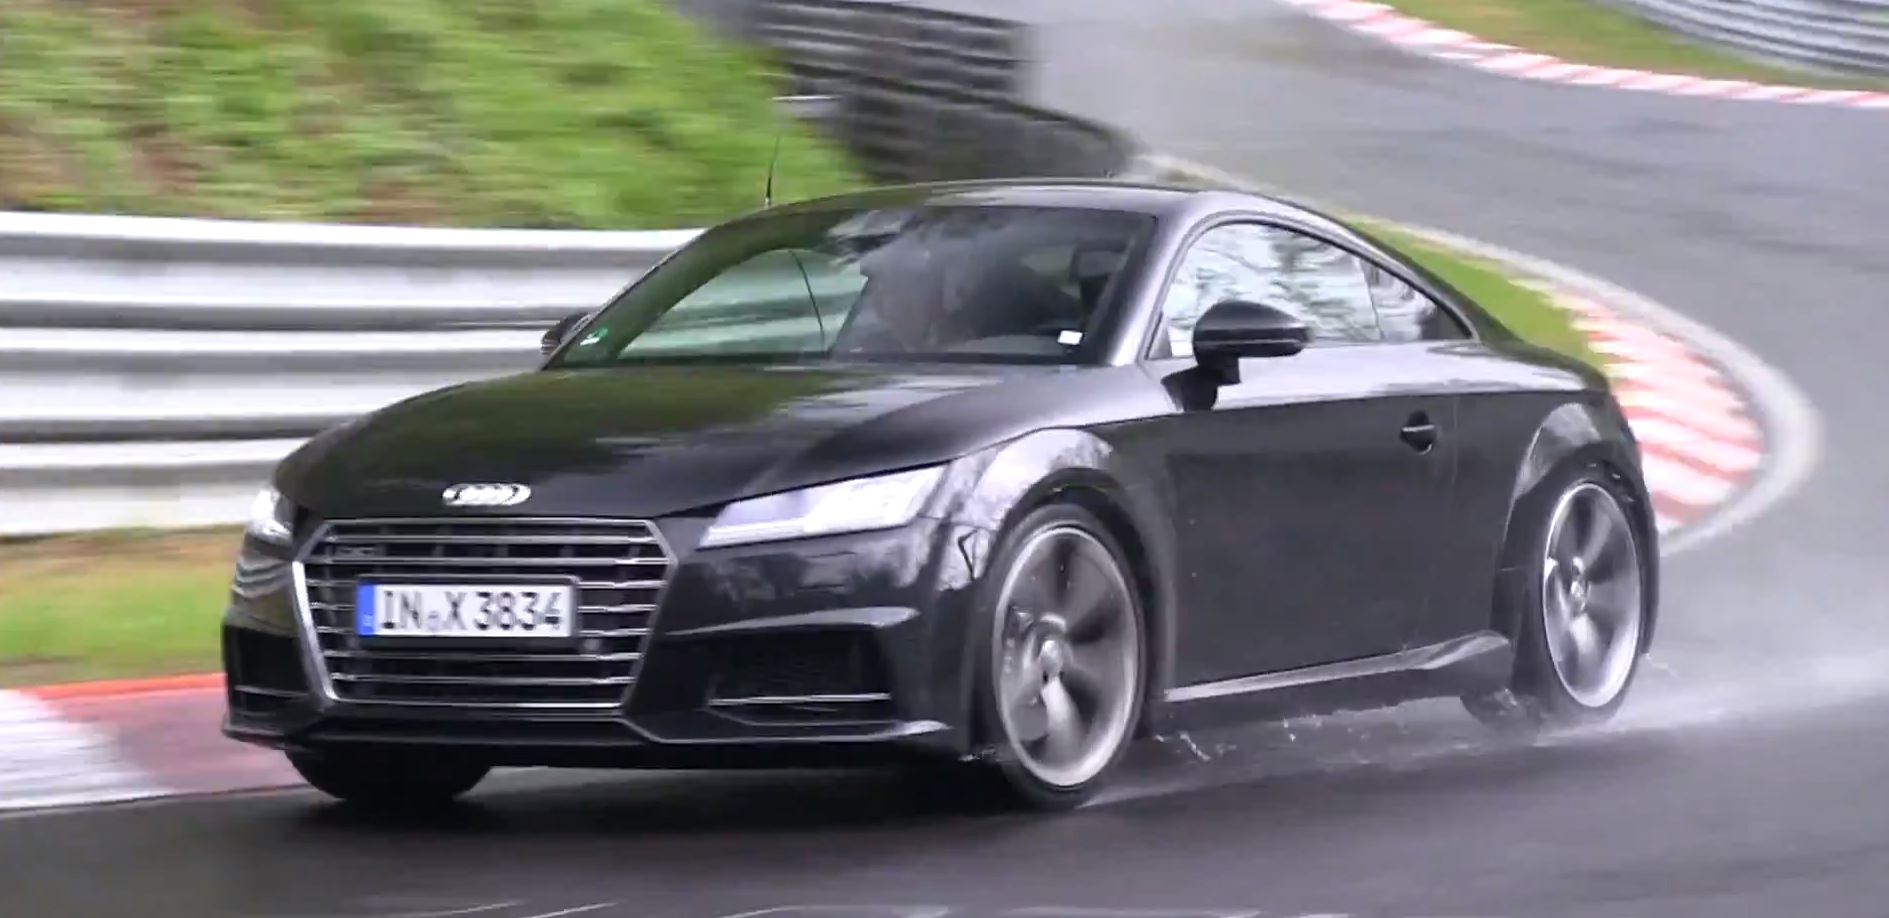 2015 audi tts coupe spied testing on extremely wet. Black Bedroom Furniture Sets. Home Design Ideas